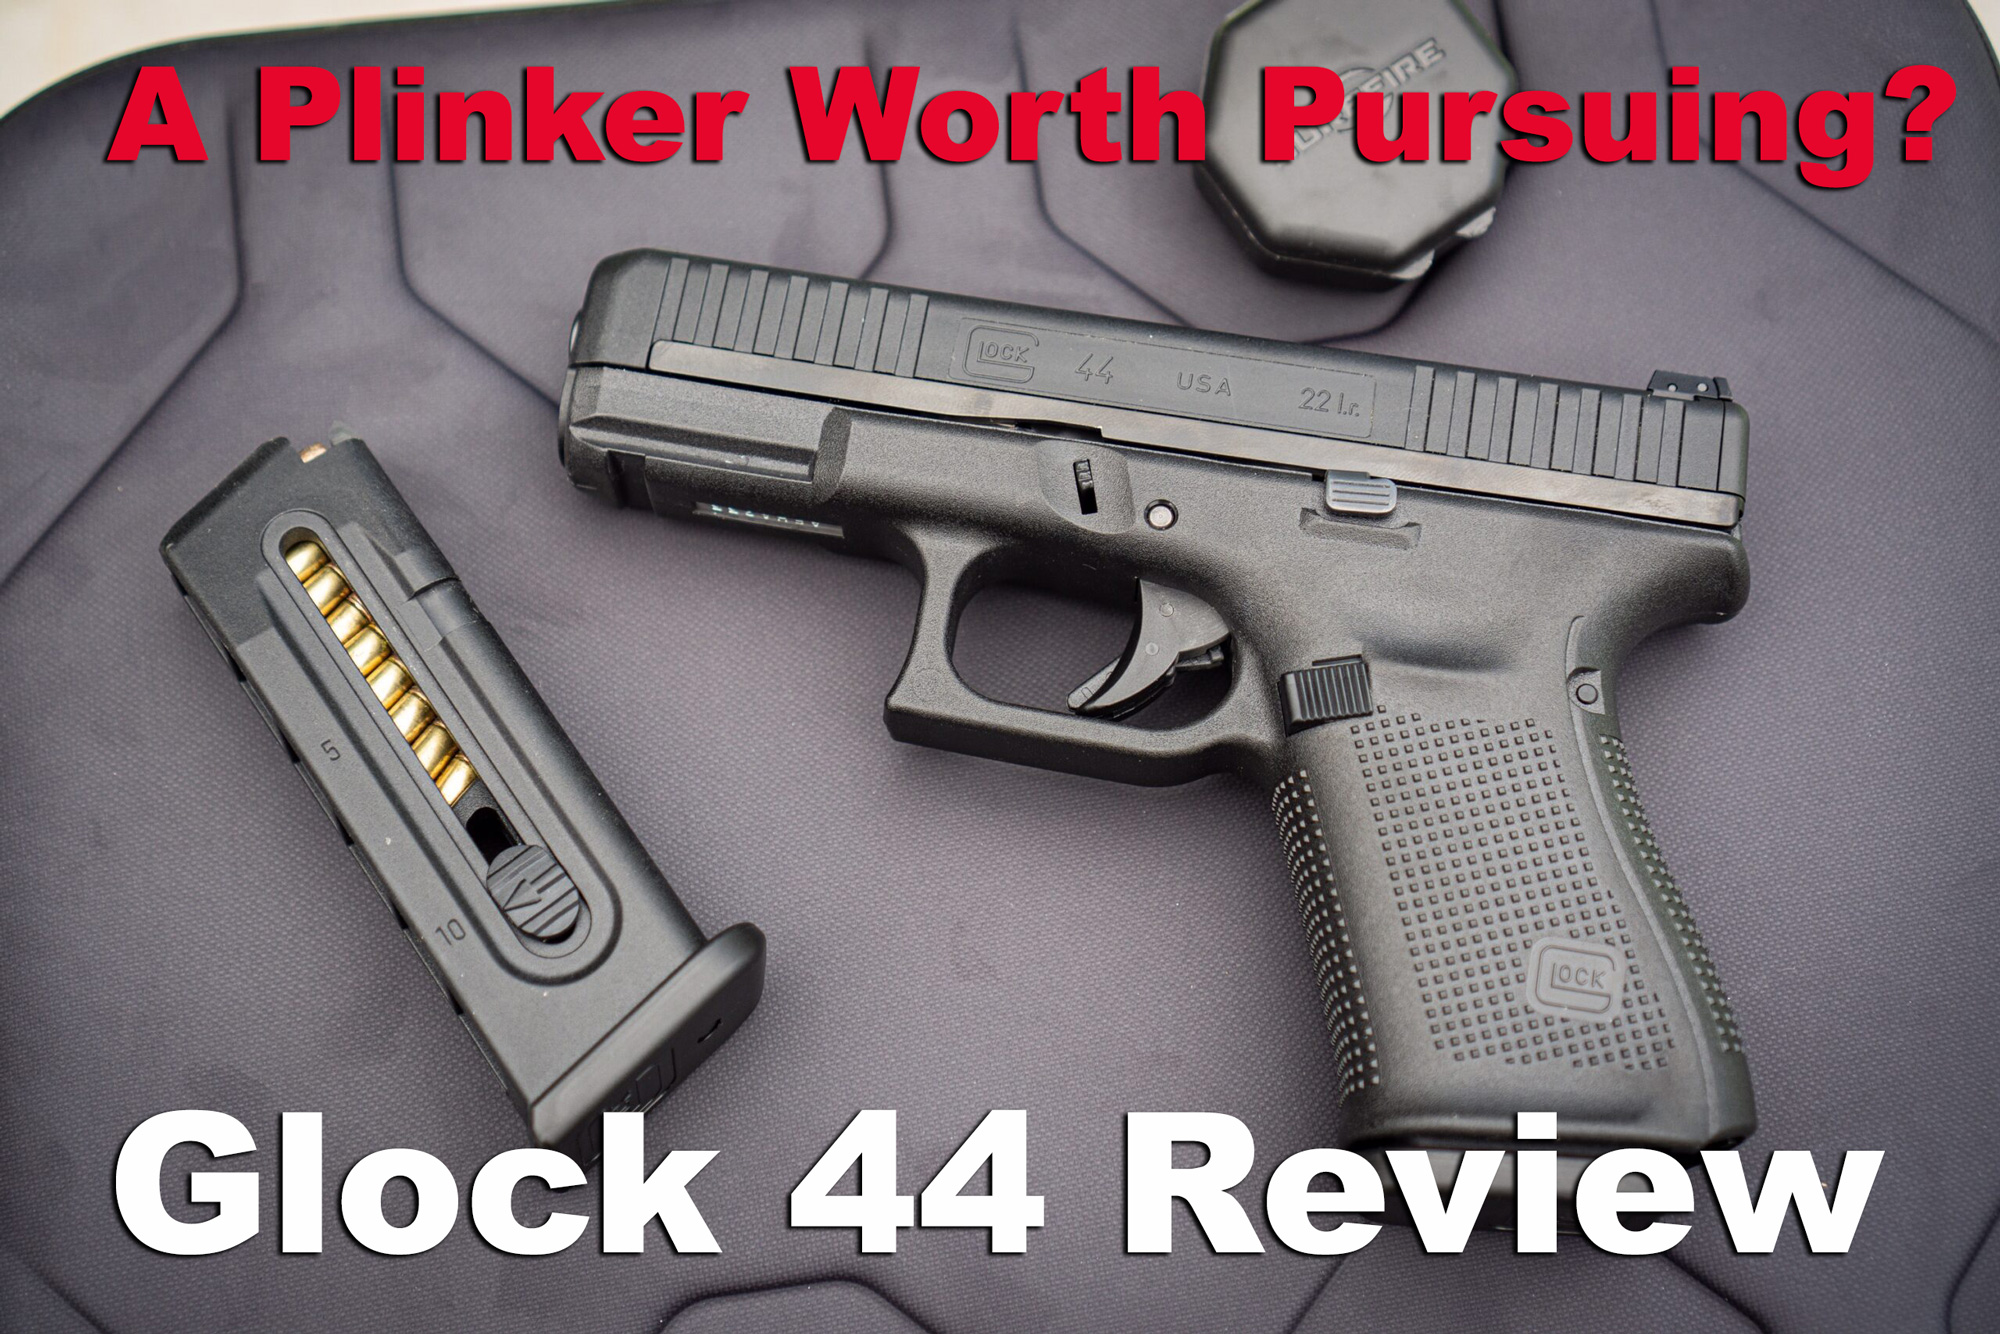 Pistol and ammo magazine used for this Glock 44 Review